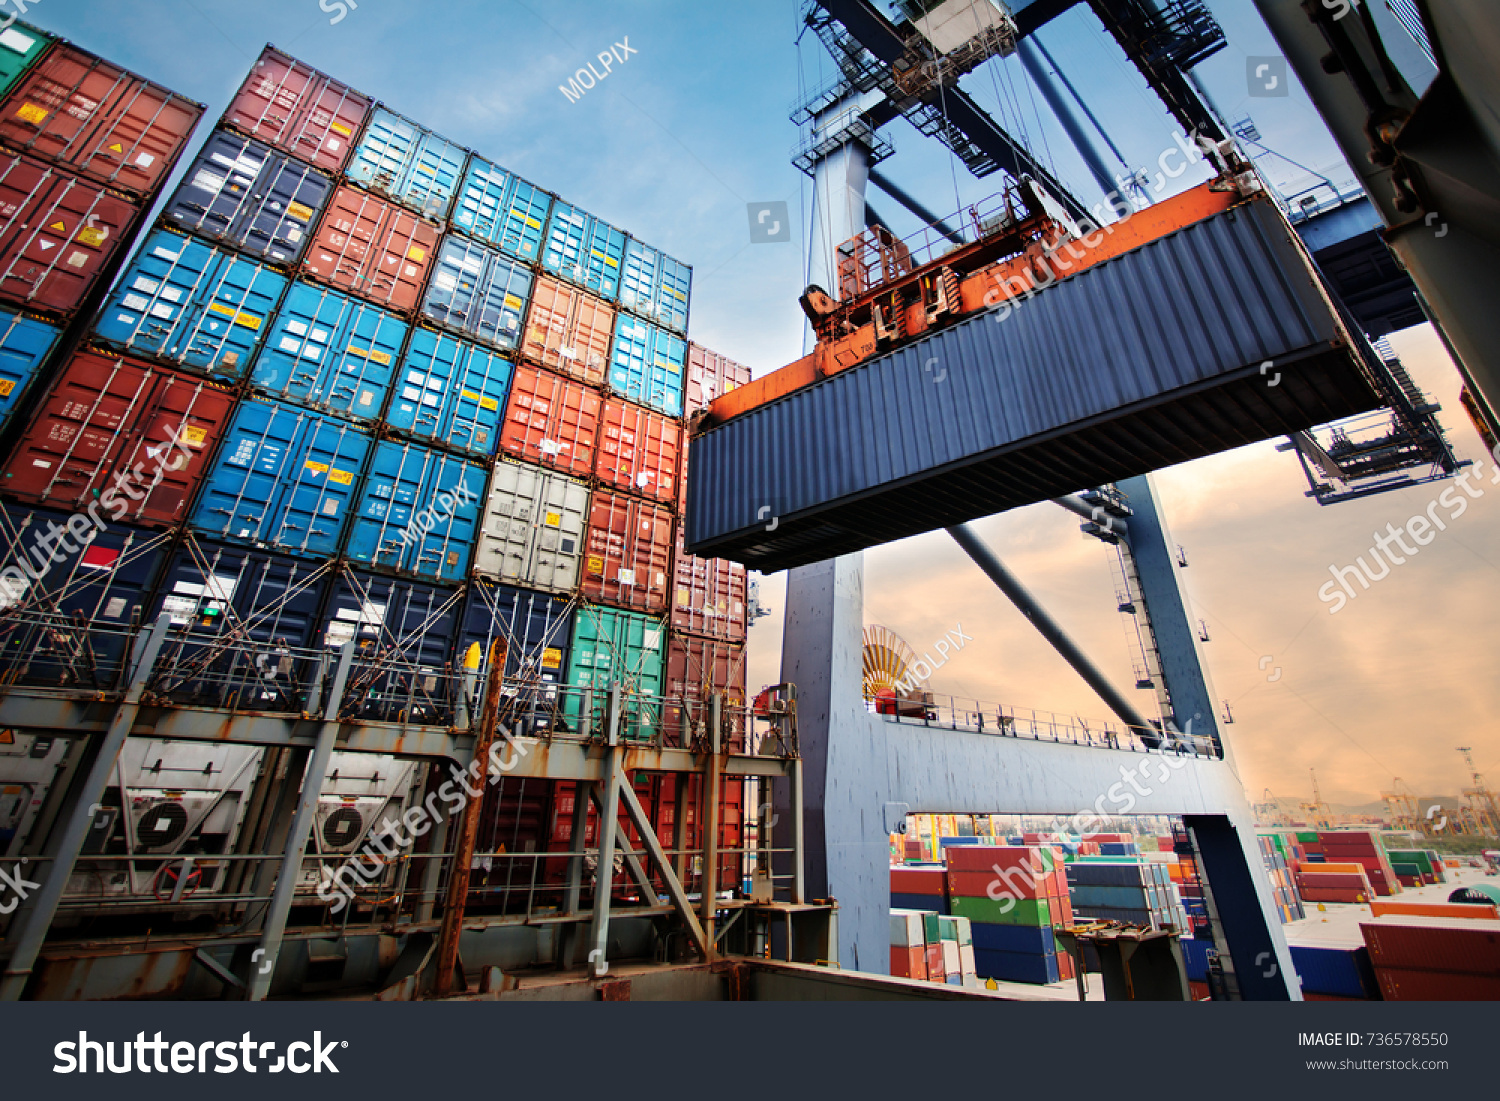 Container loading in a Cargo freight ship with industrial crane. Container ship in import and export business logistic company. Industry and Transportation concept. #736578550